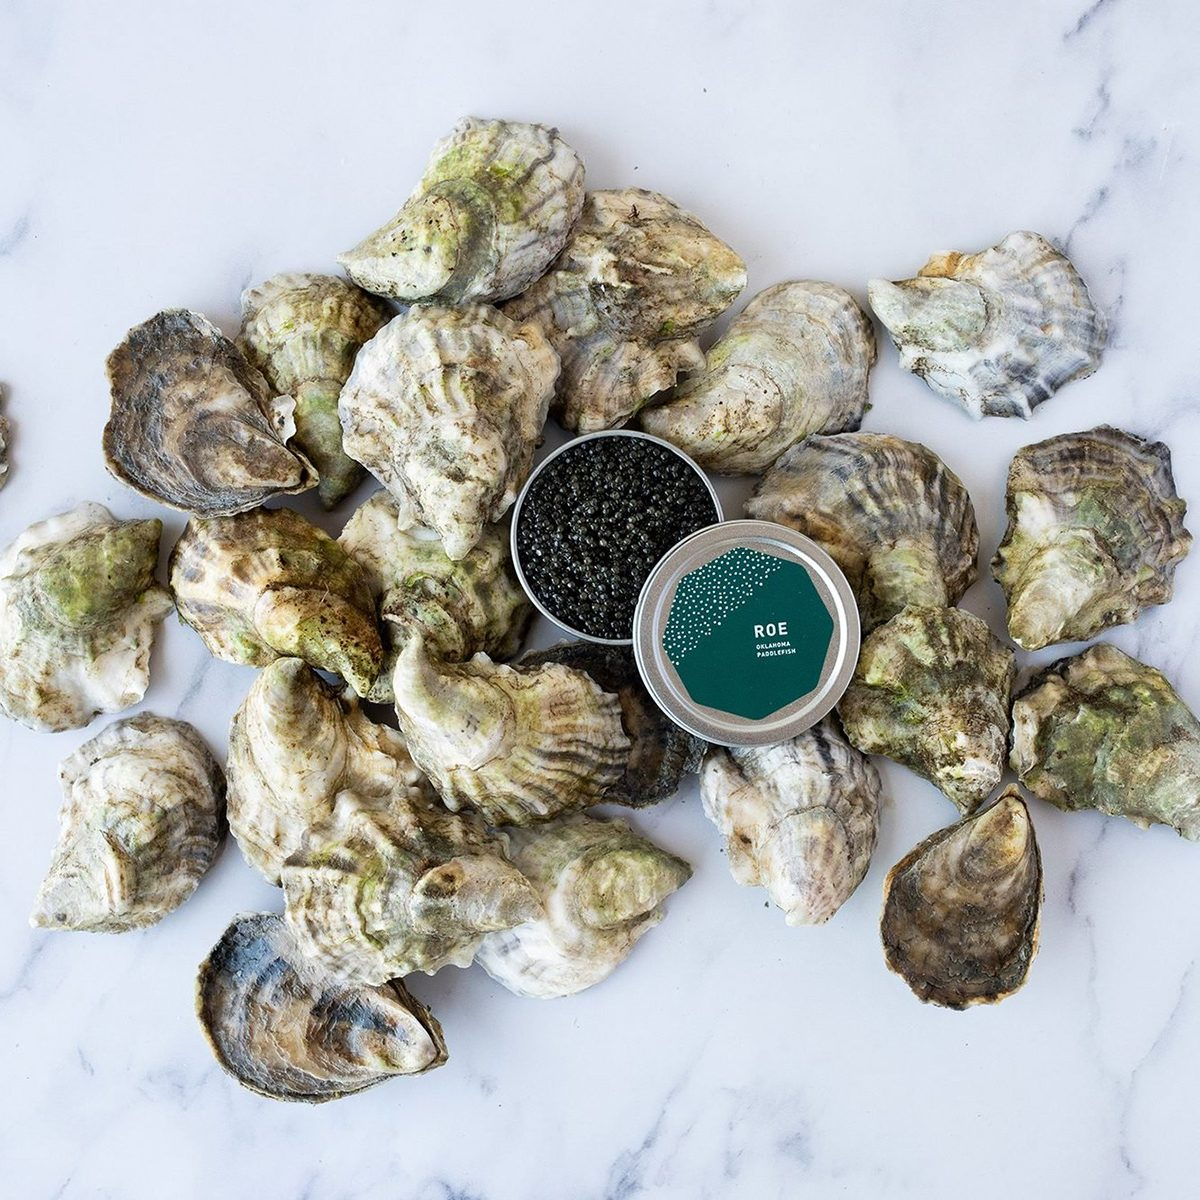 Island Creek Oysters Paddlefish Roe and 2 Dozen Oysters